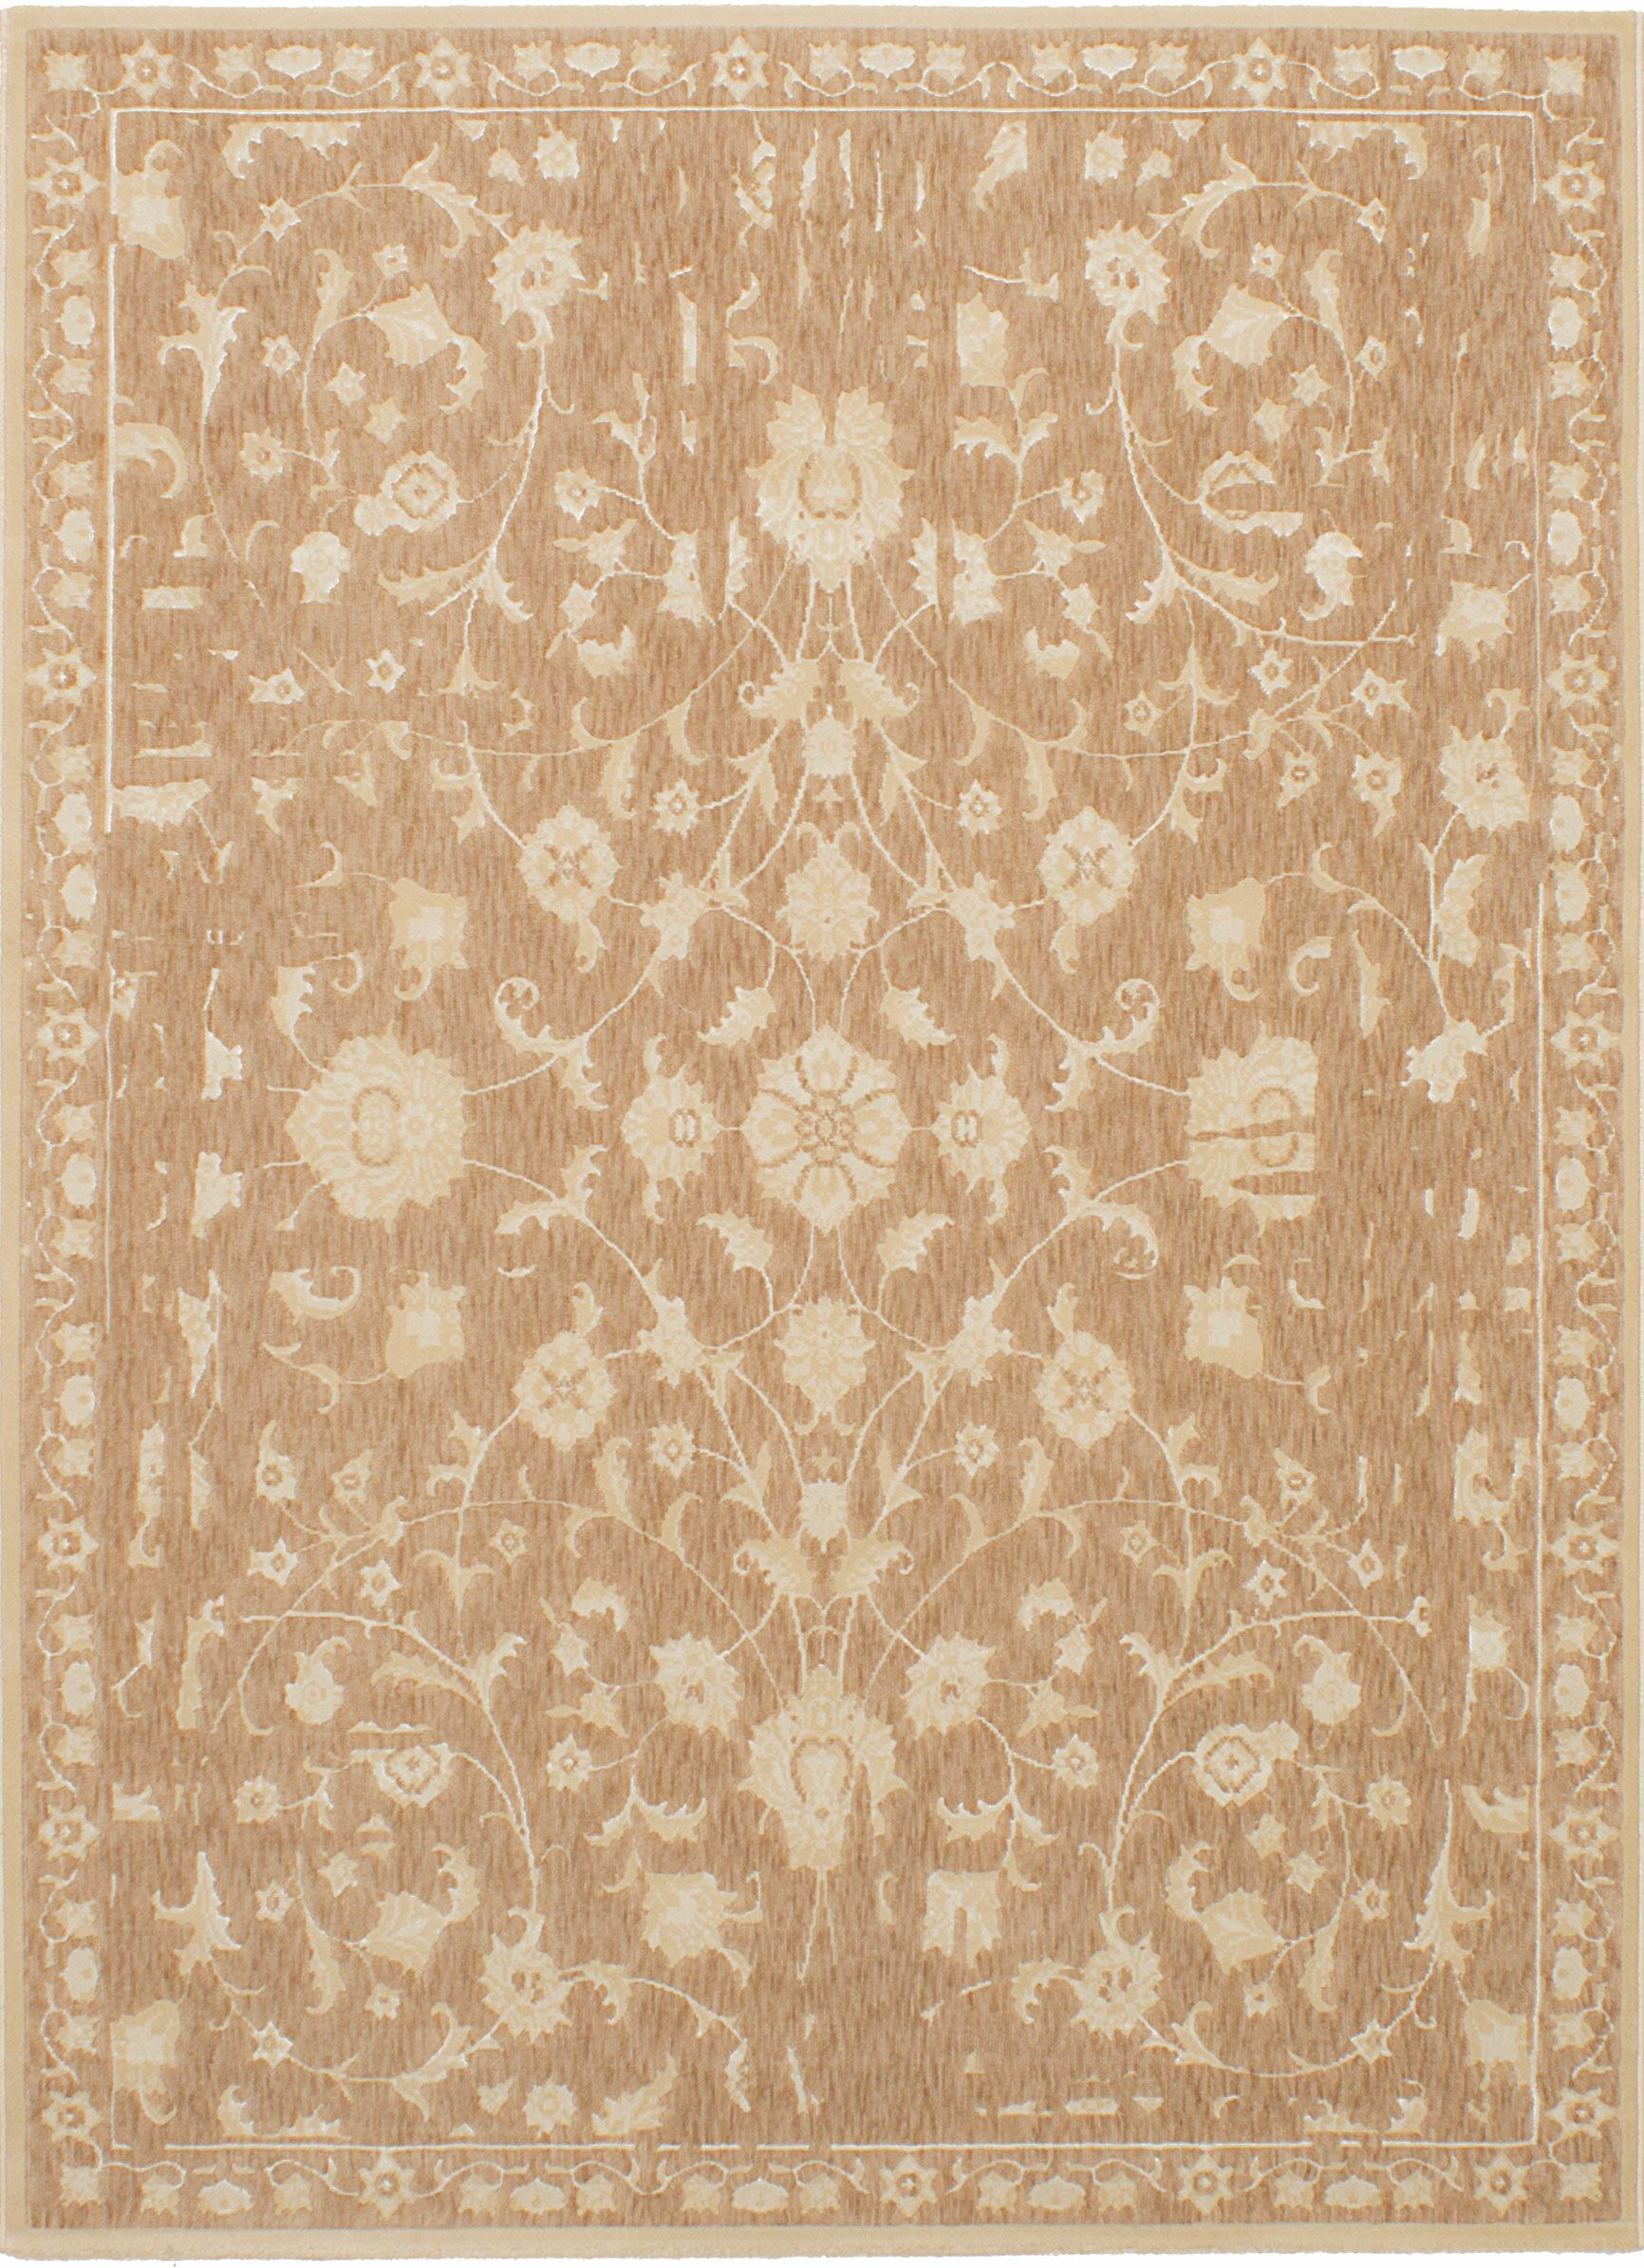 Himrod Beige Area Rug Rug Size: Rectangle 5'5